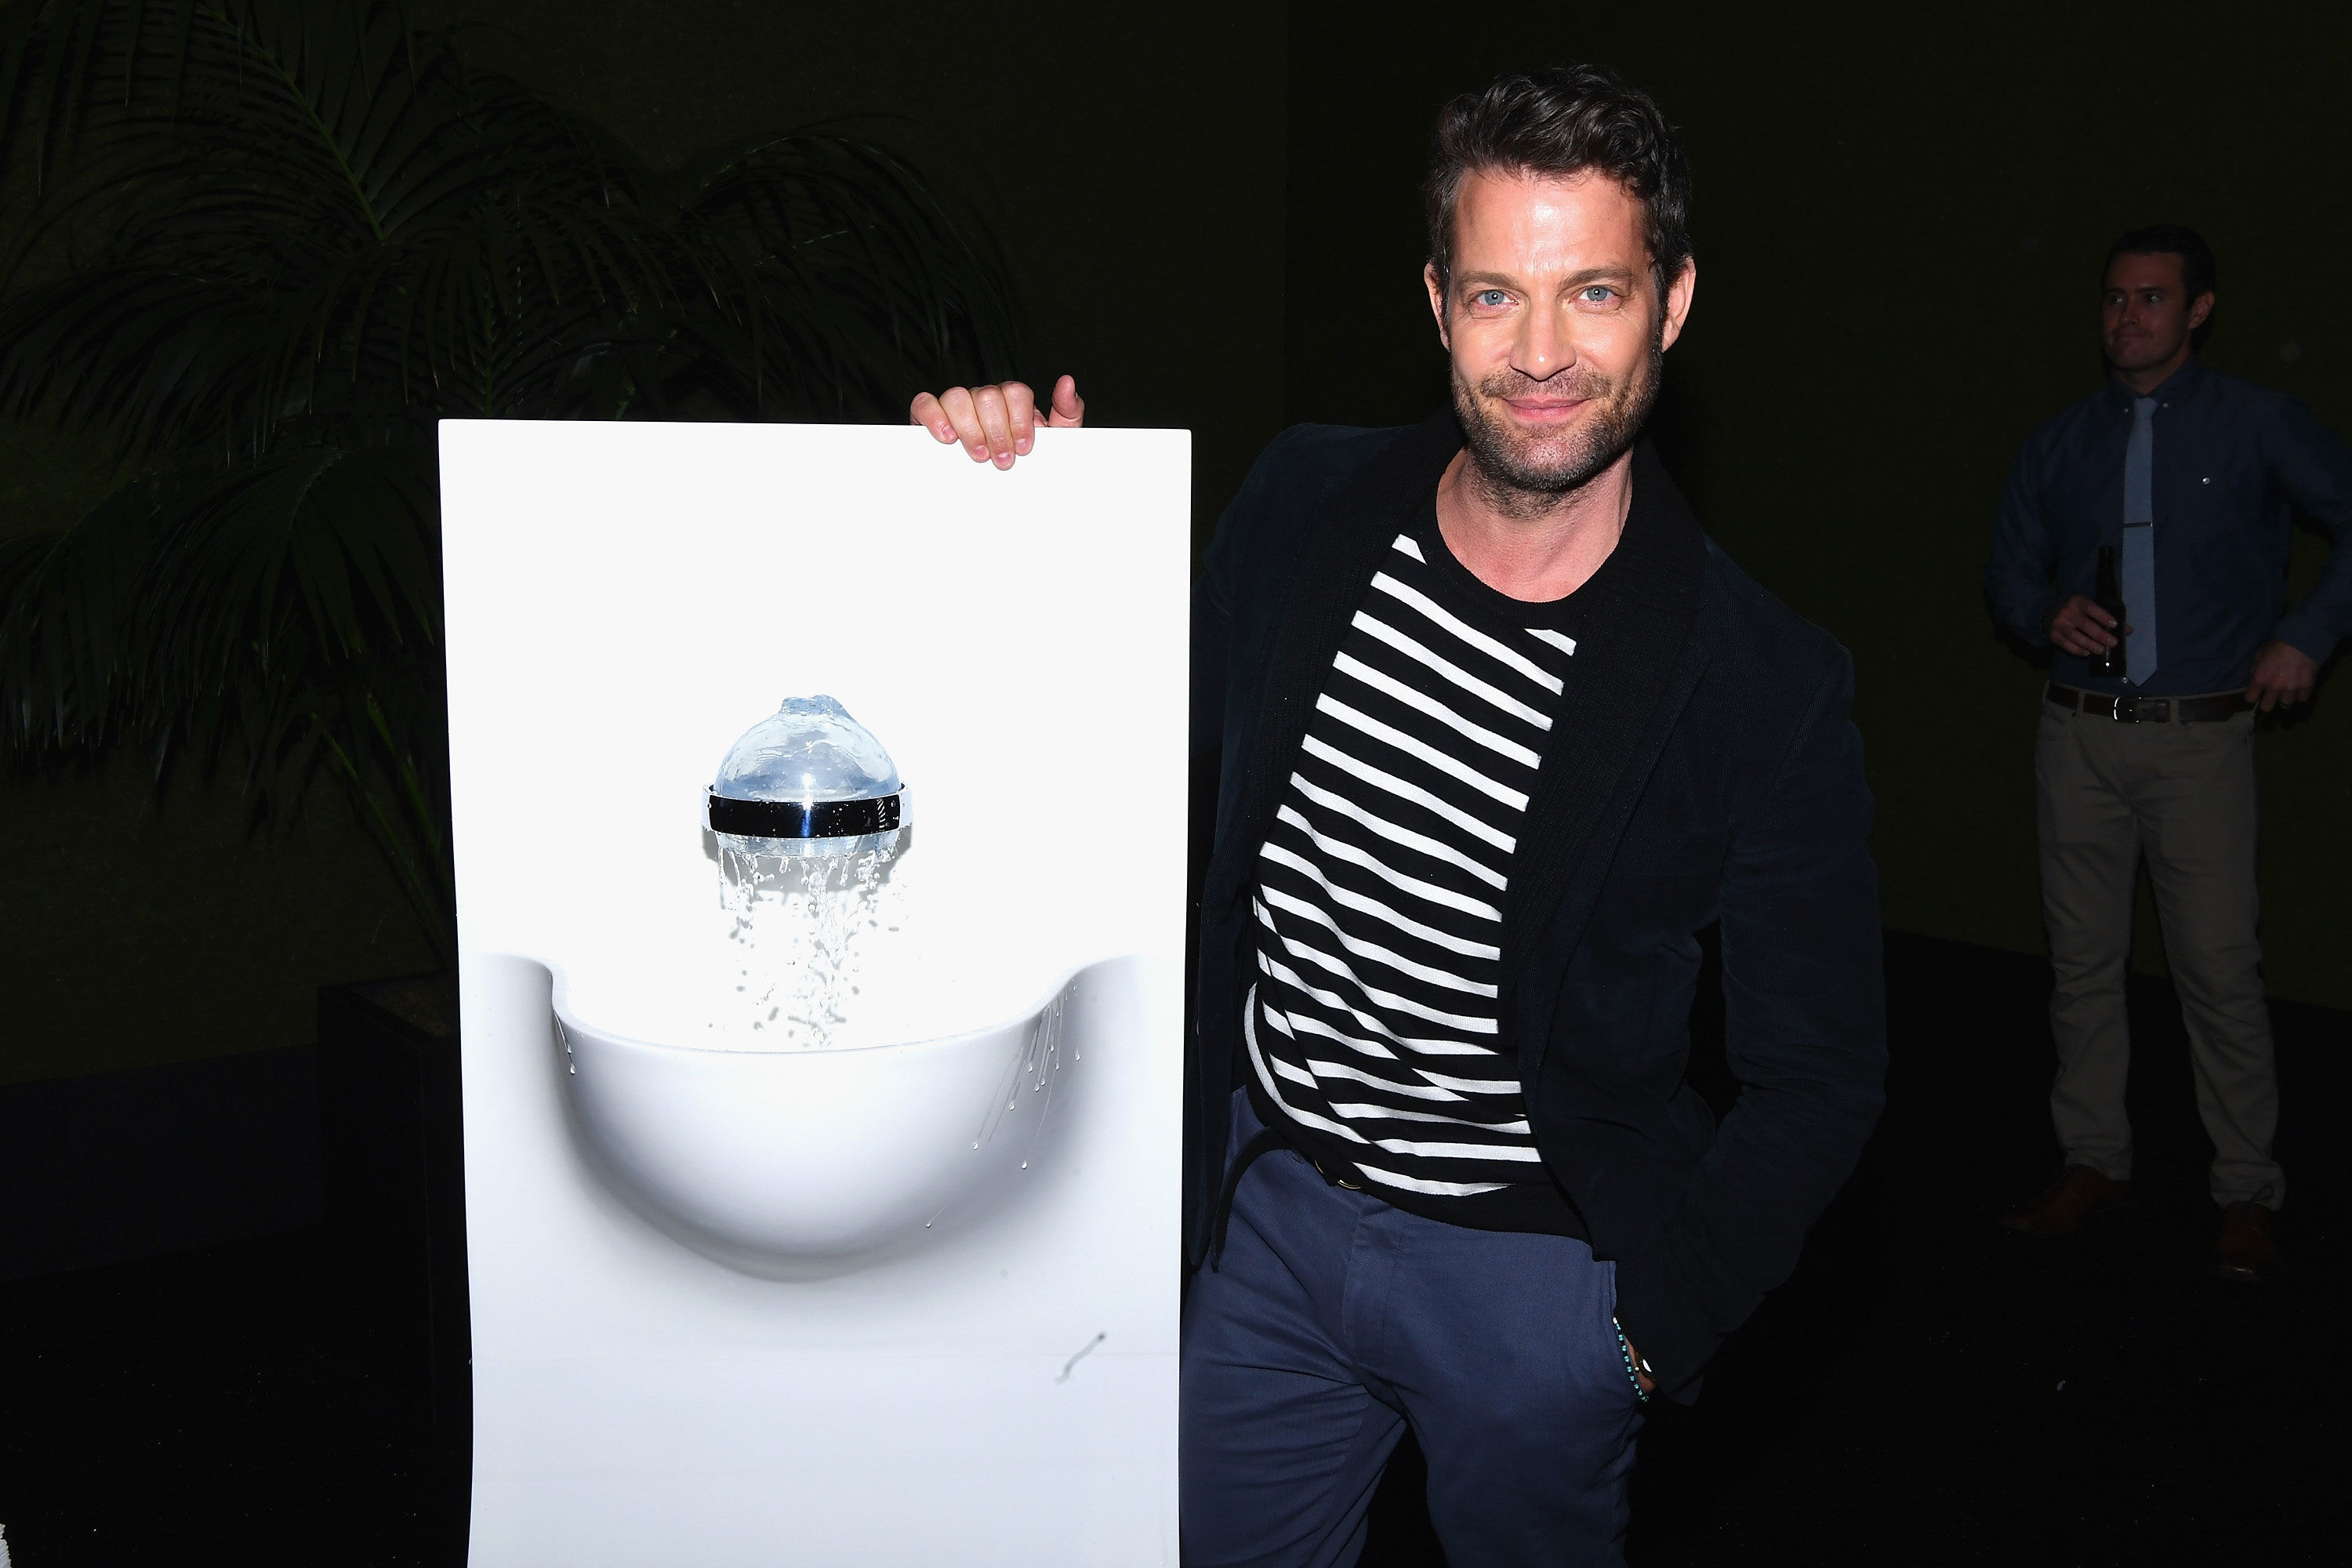 Nate Berkus Talks Biggest Design Mistakes, Collecting, and How Delta Faucet's Latest Creation Could Bring Calm Into Your Home